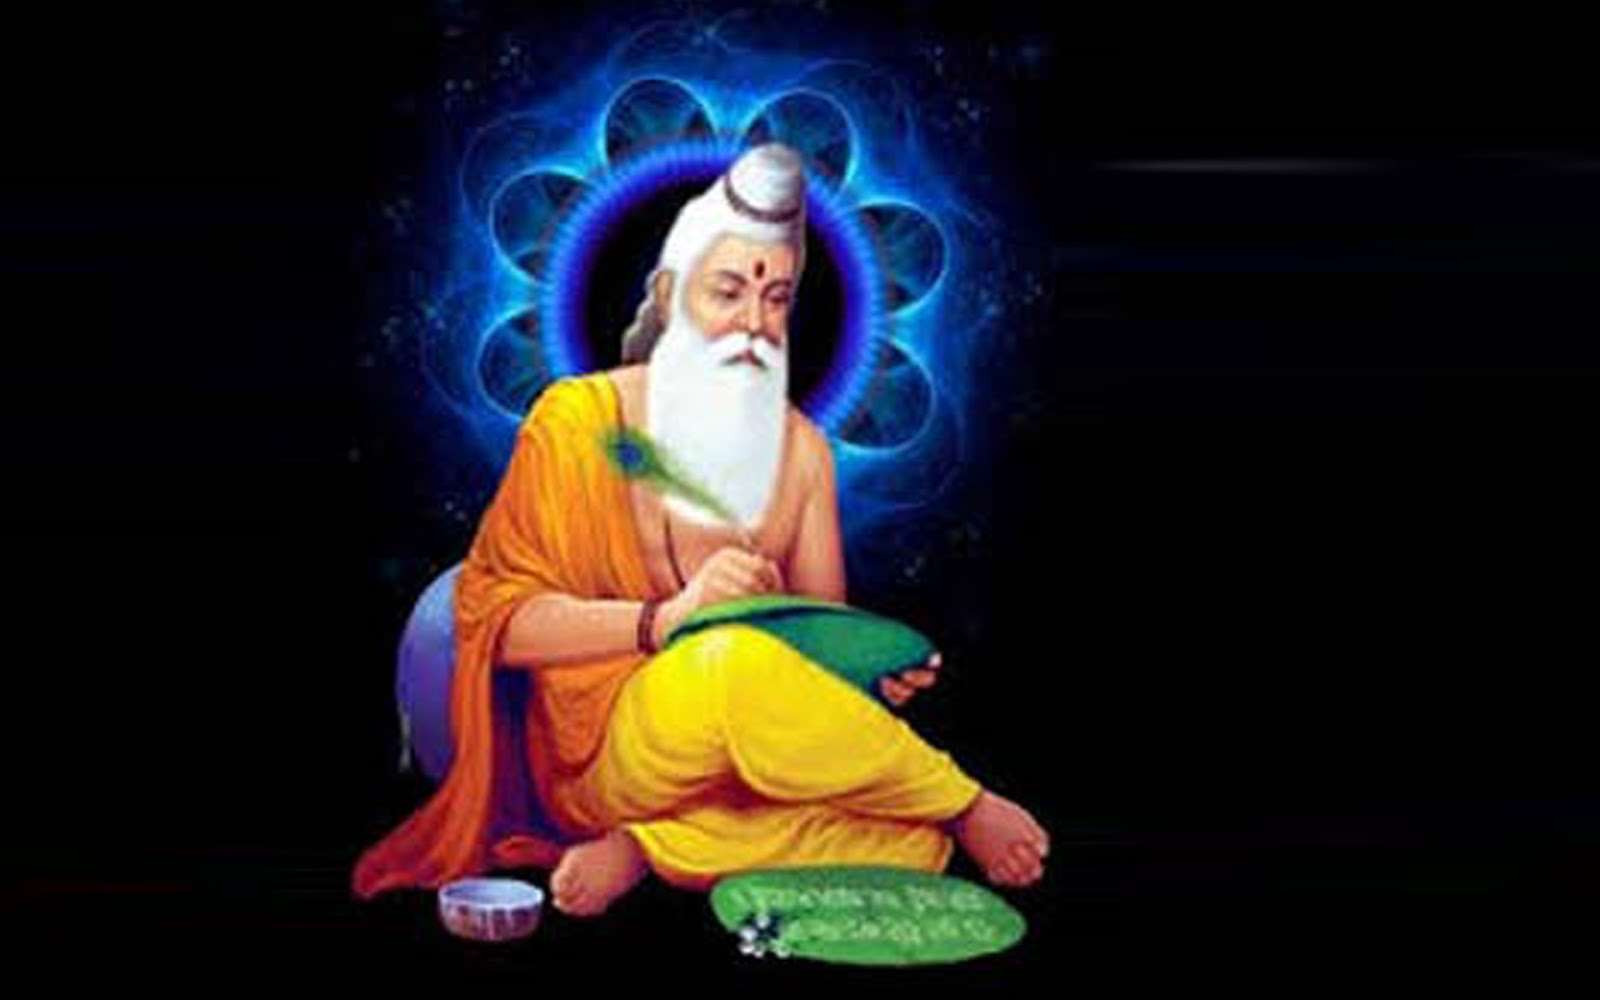 Hd wallpaper valmiki - We At Festivals Of Life Wish All Our Readers A Very Happy Maharishi Valmiki Jayanti 2016